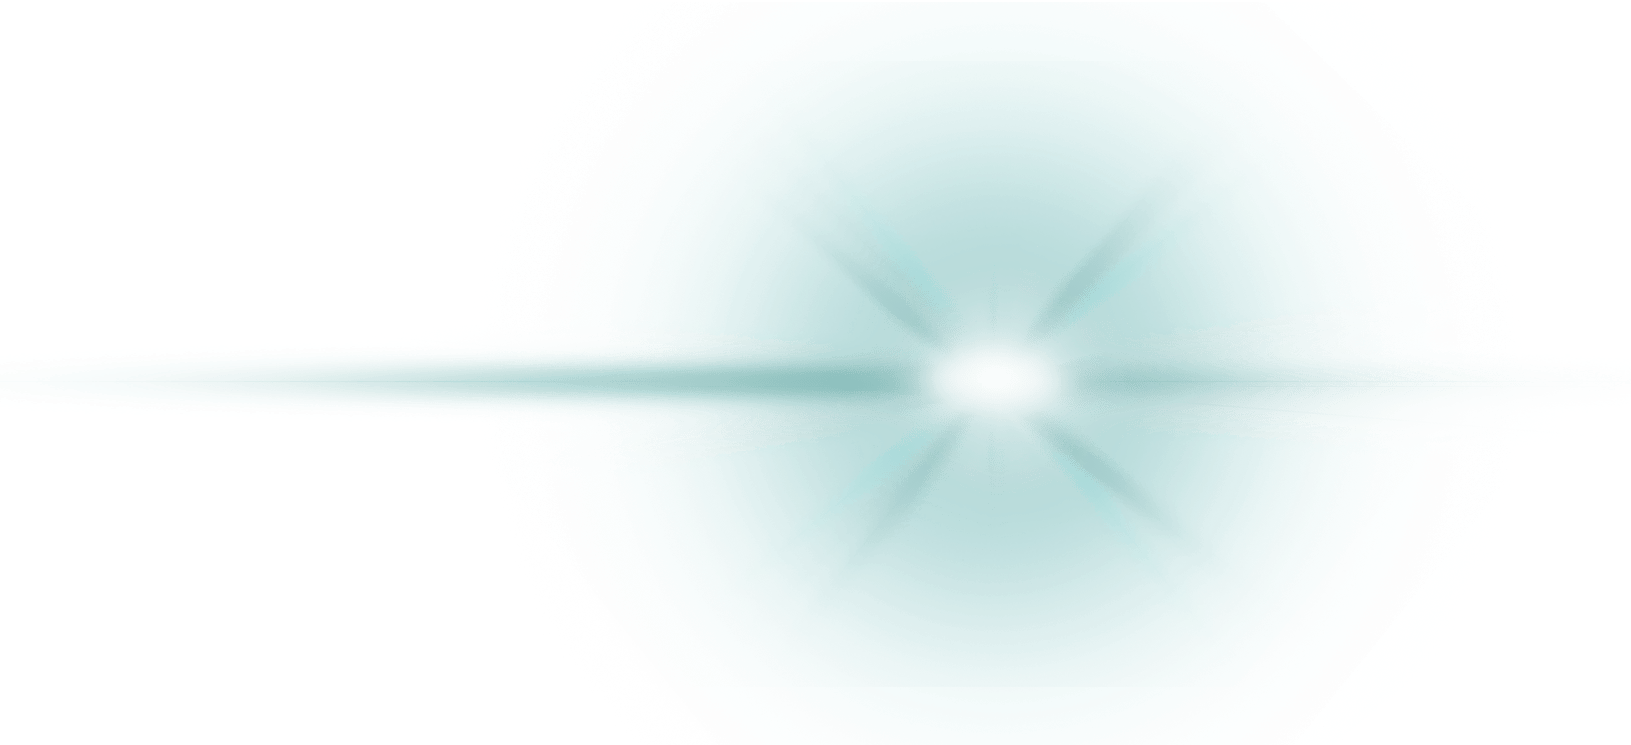 miscellaneous · lens flares